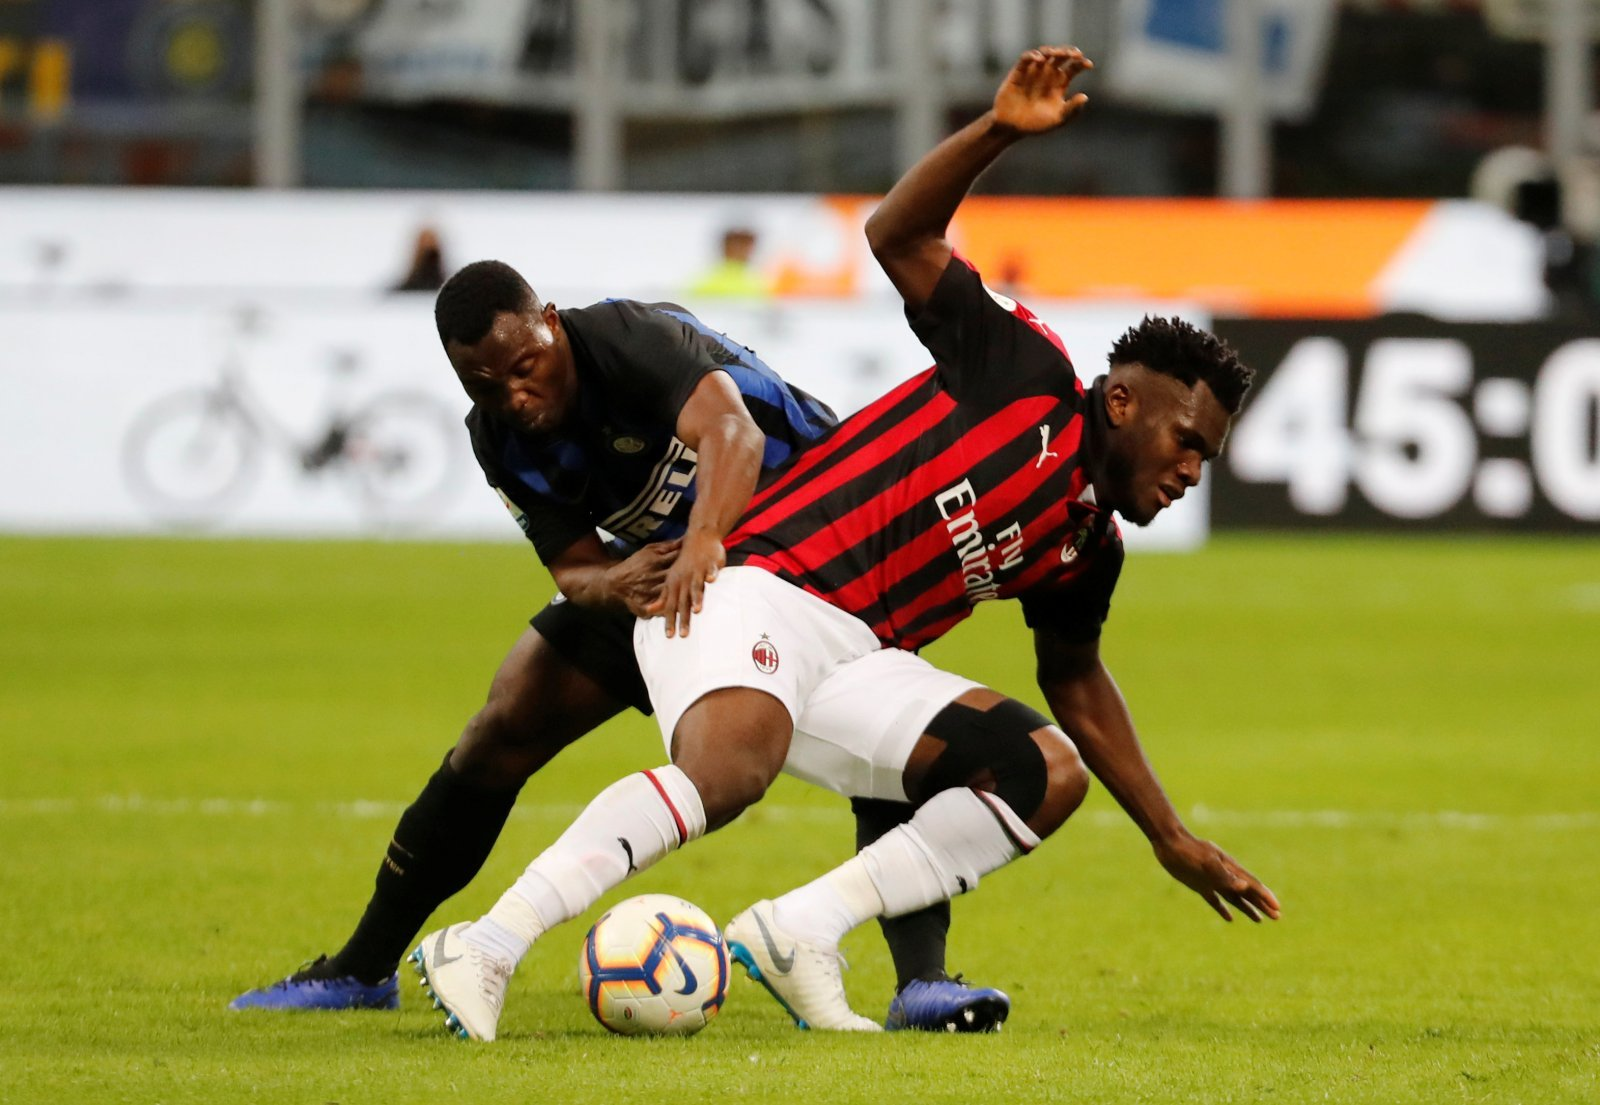 Franck Kessie would be a big signing to strengthen Arsenal's core